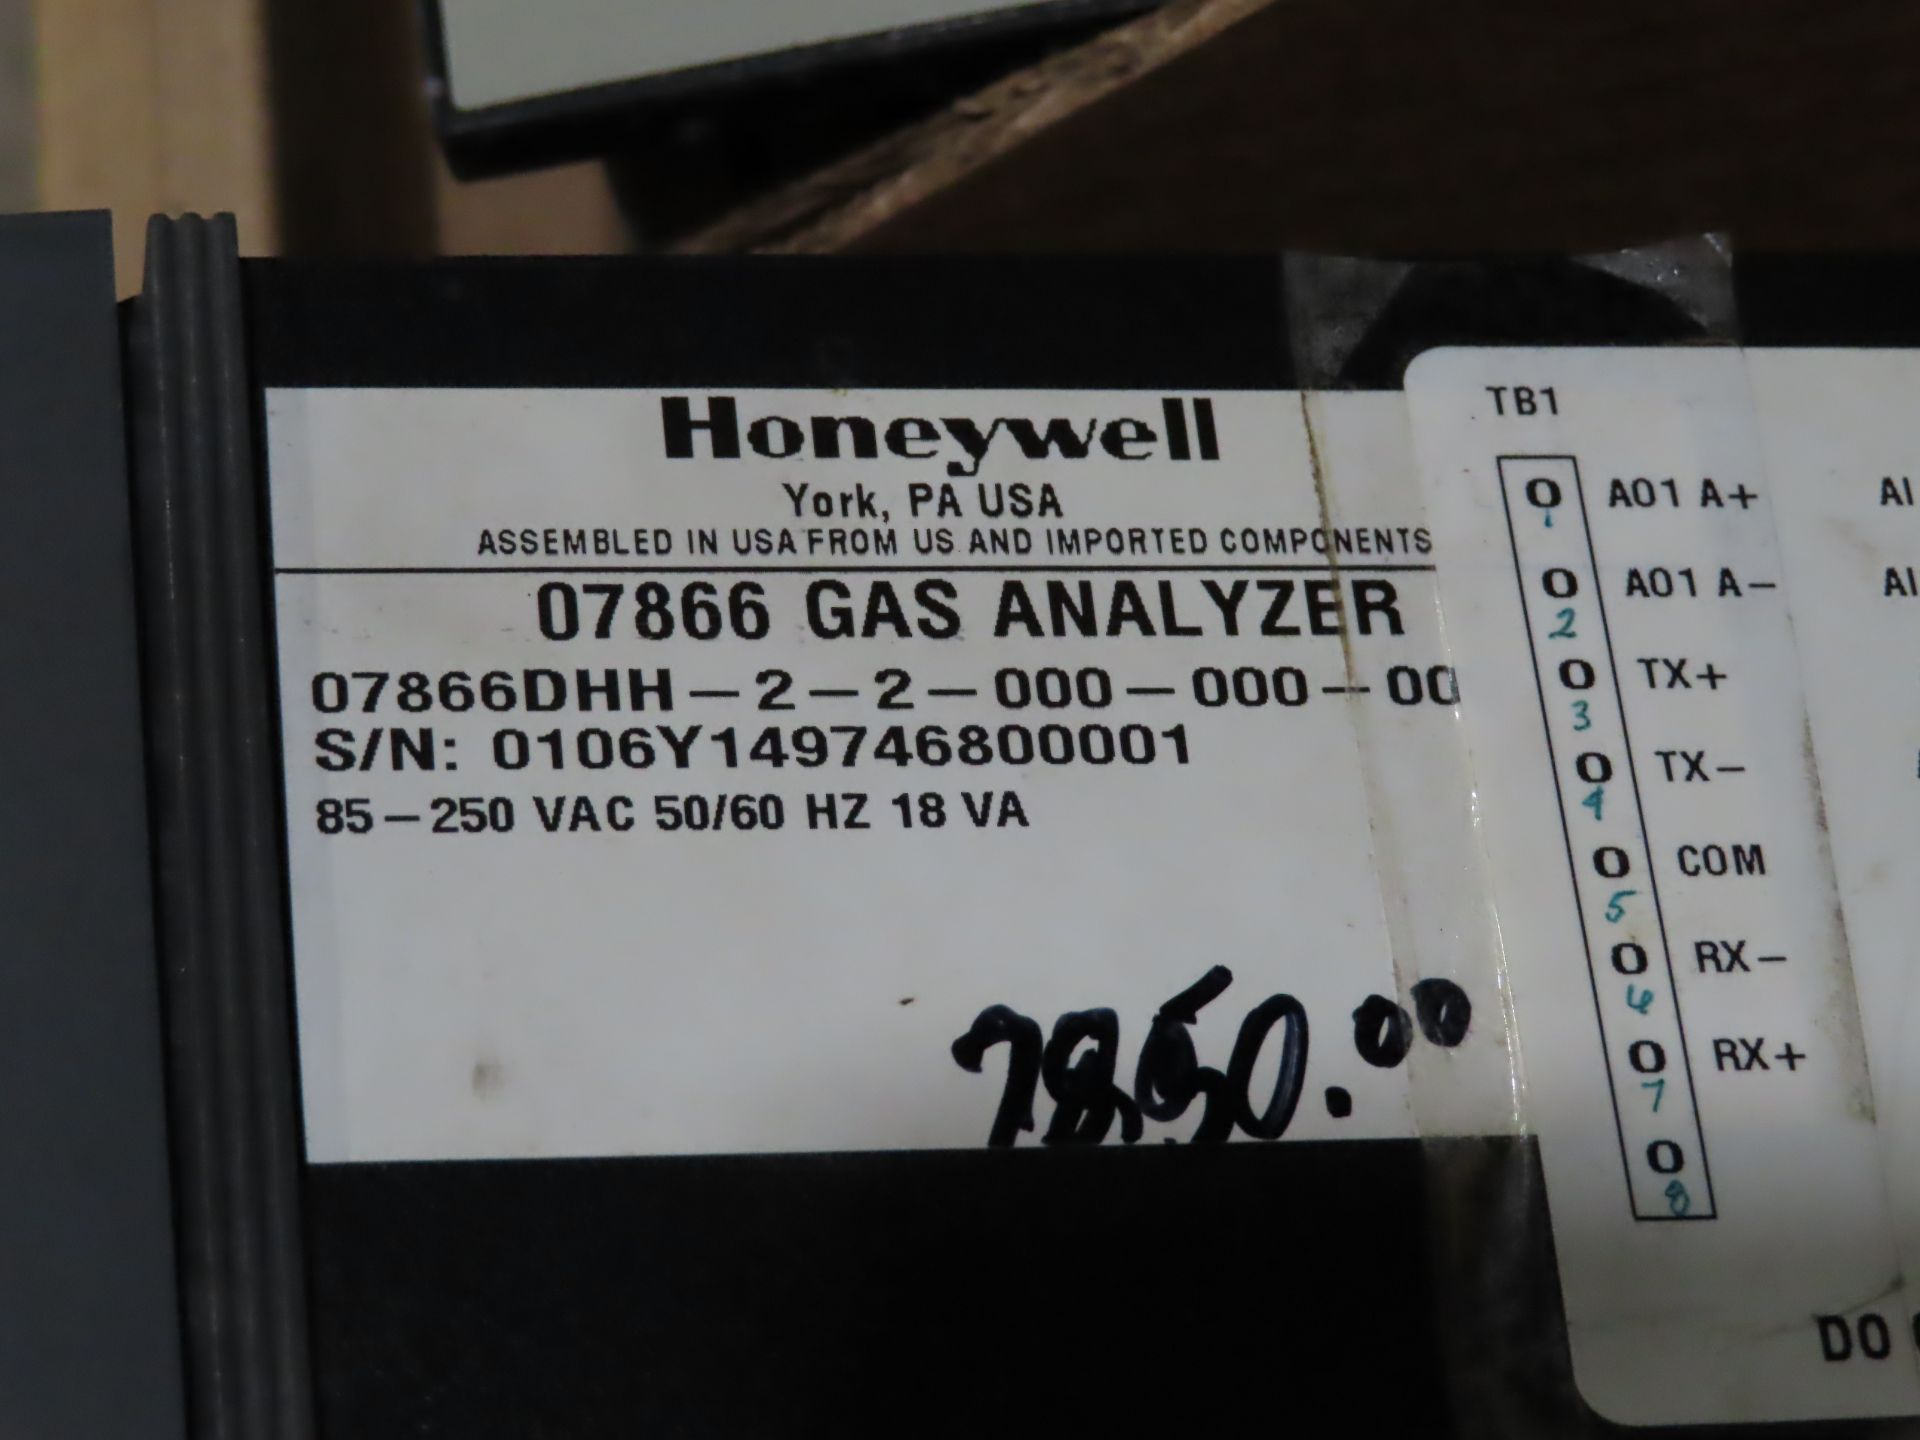 Lot 35 - Honeywell model 07866DHH-2-2-000-000-00, as always, with Brolyn LLC auctions, all lots can be picked